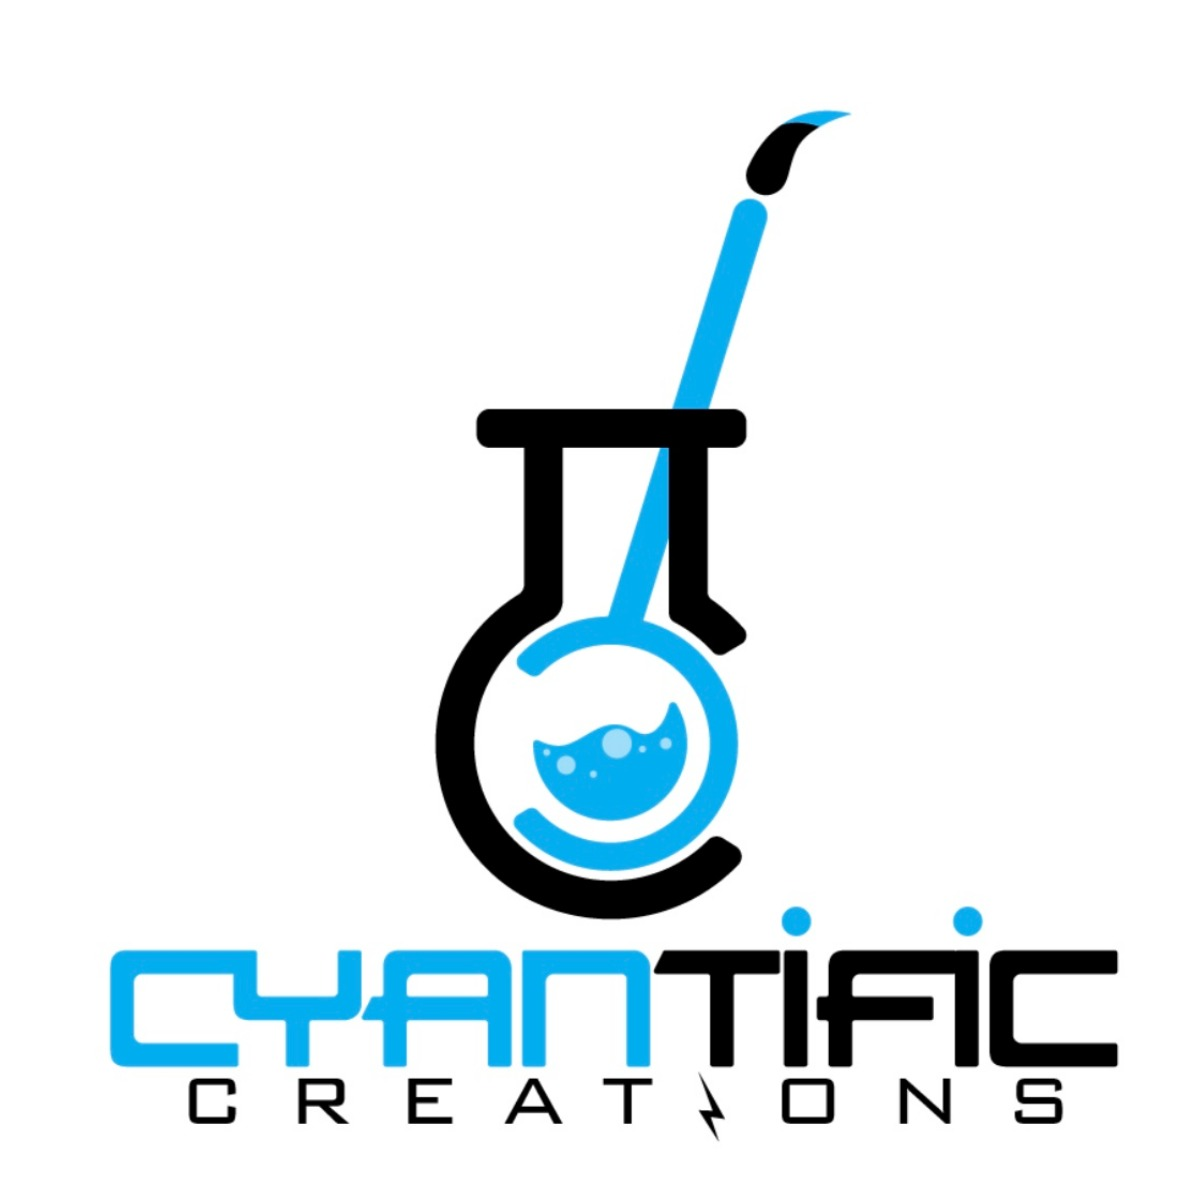 Cyantific Creations llc Profile Picture